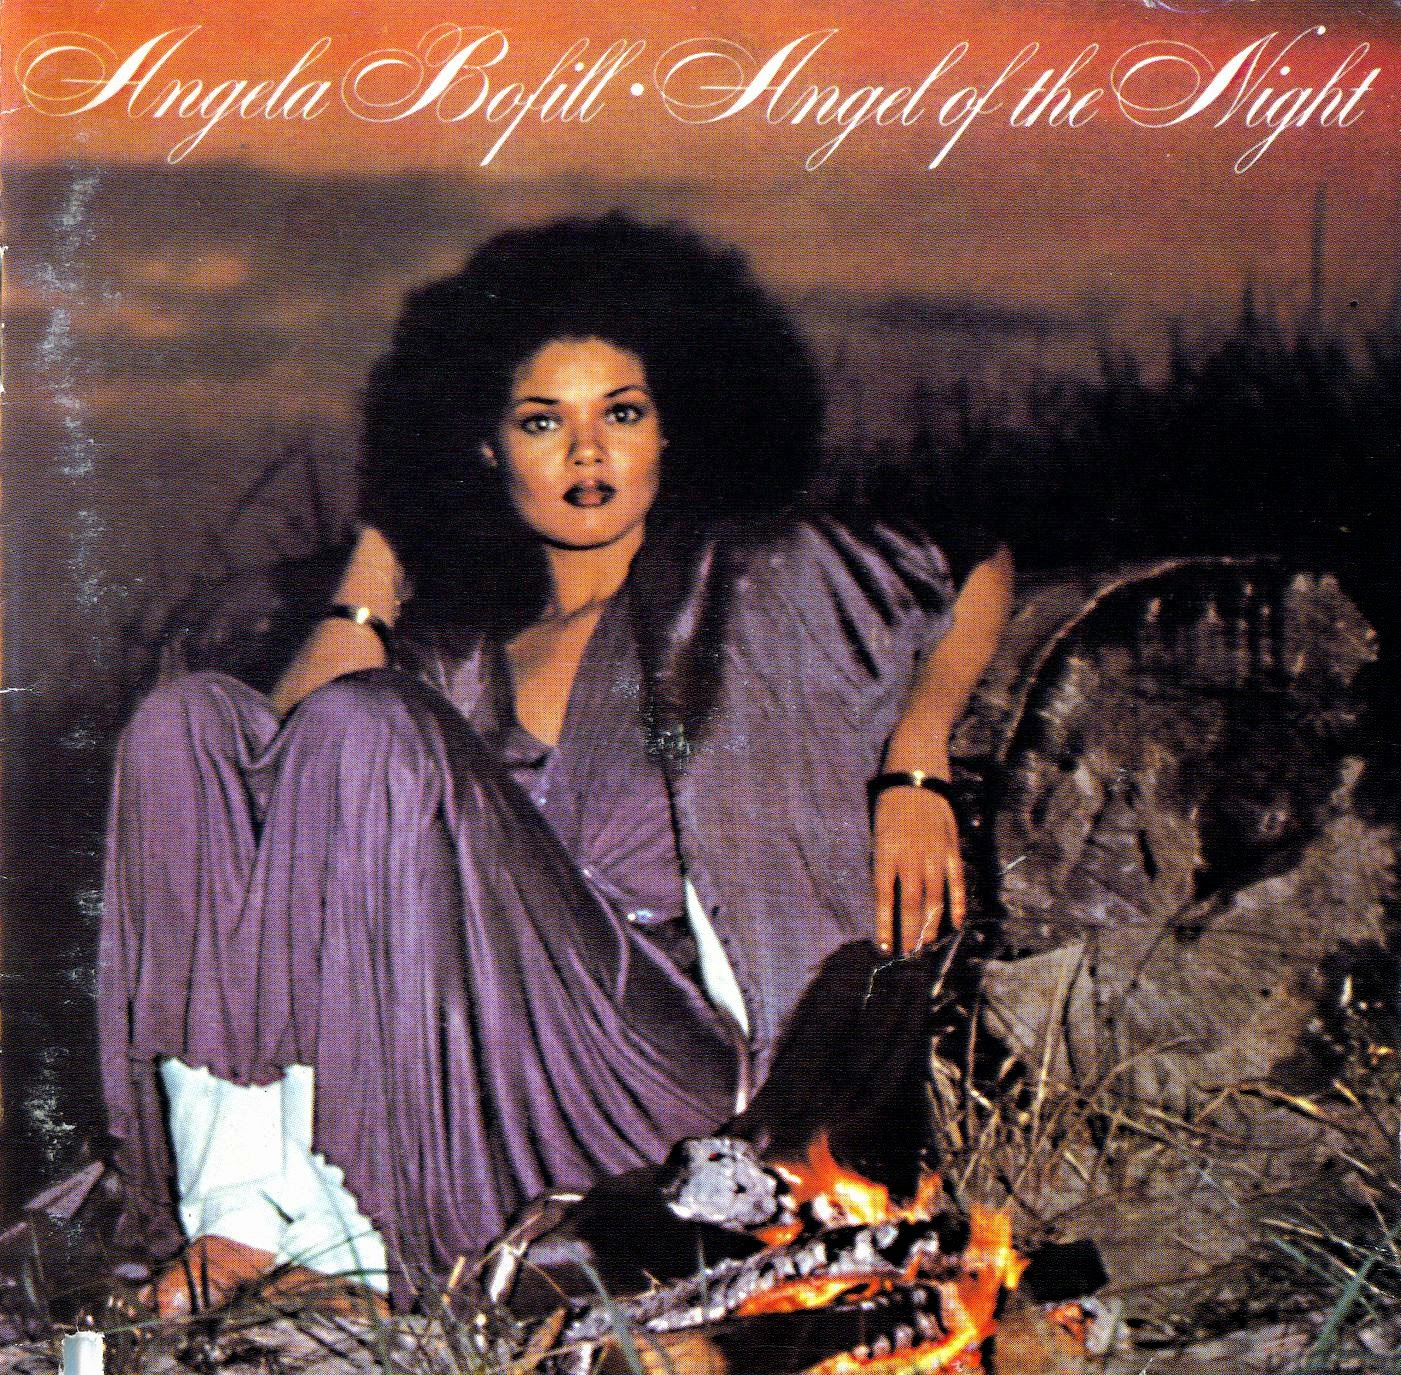 Angel of the night 1985 usa eng